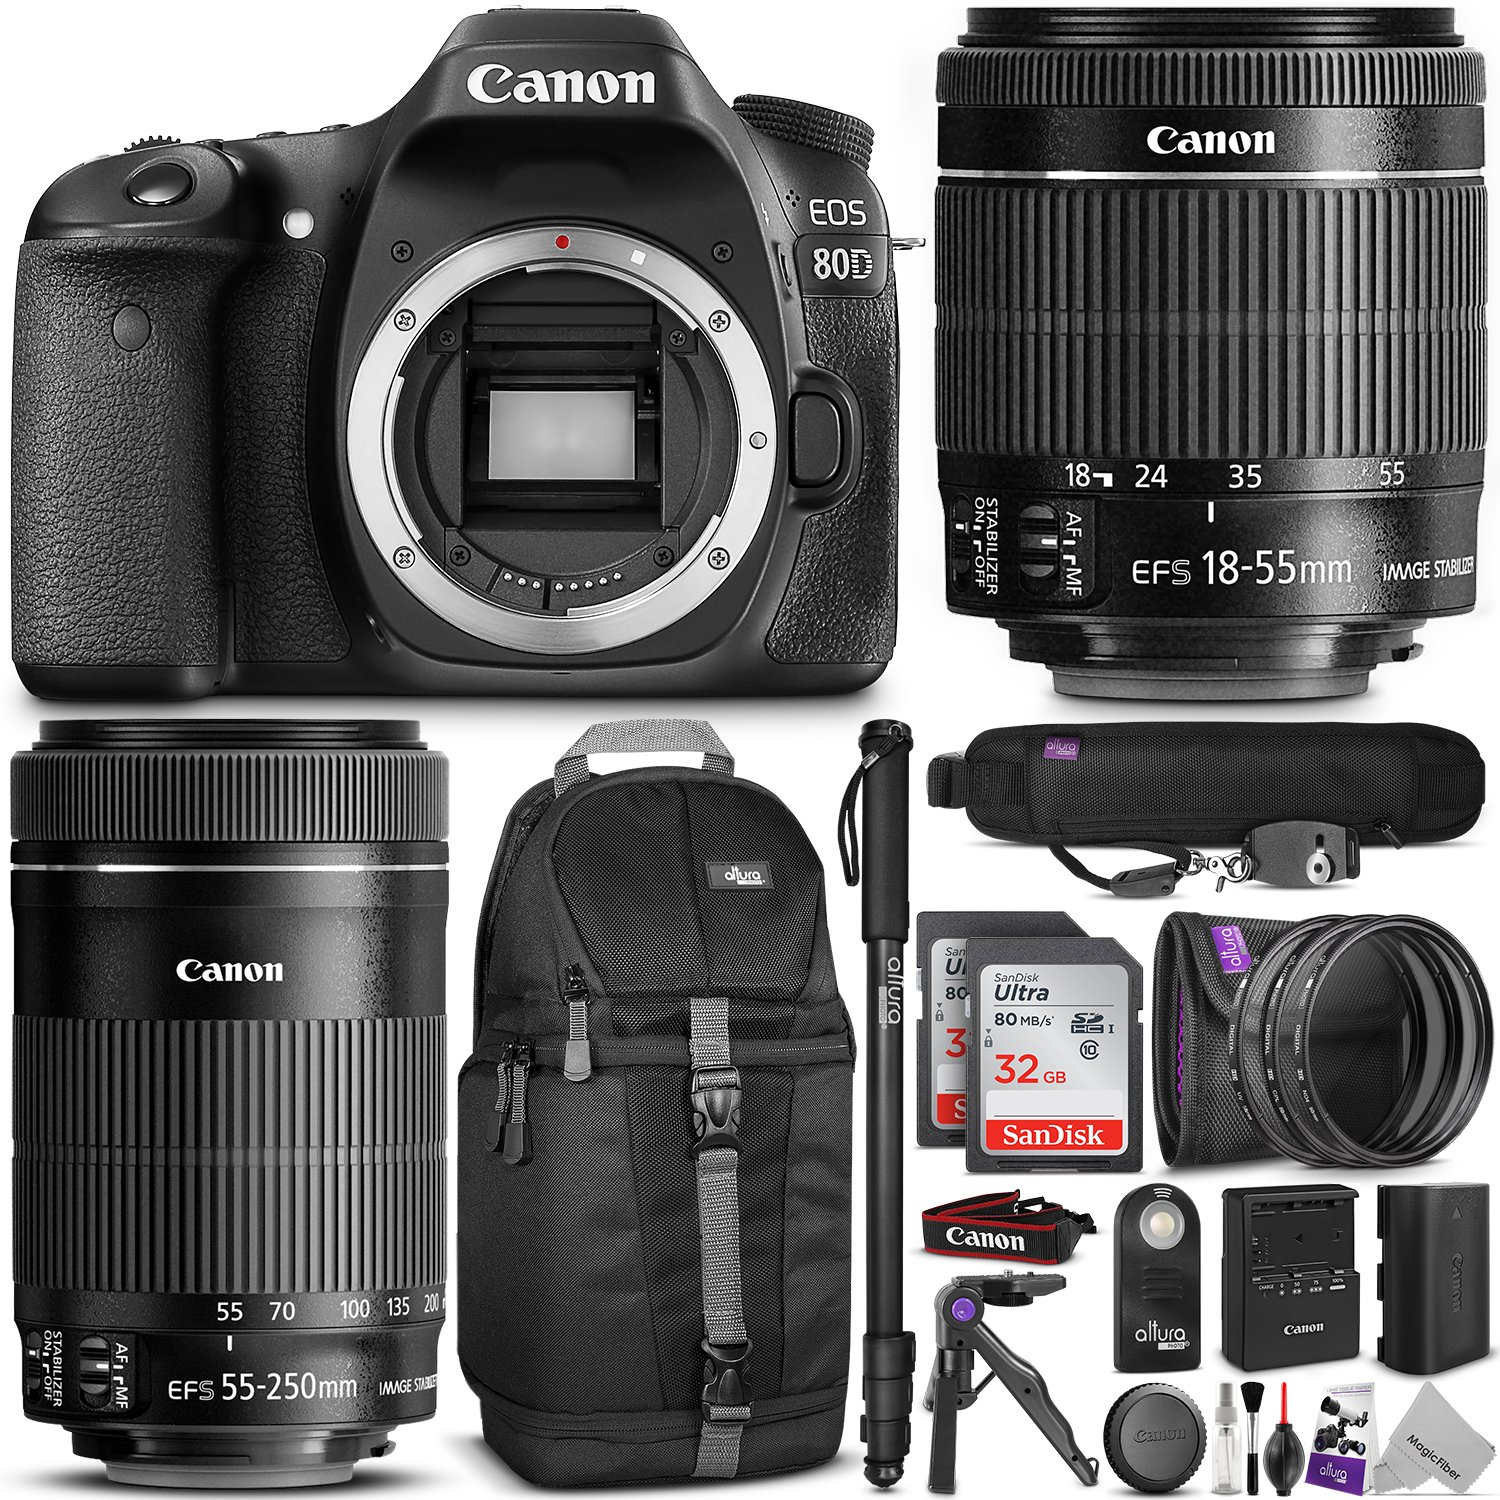 Canon EOS 80D DSLR Camera with EF-S 18-55mm f/3.5-5.6 IS STM and EF-S 55-250mm f/4-5.6 IS STM Lens w/ Advanced Photo and Travel Bundle by Canon